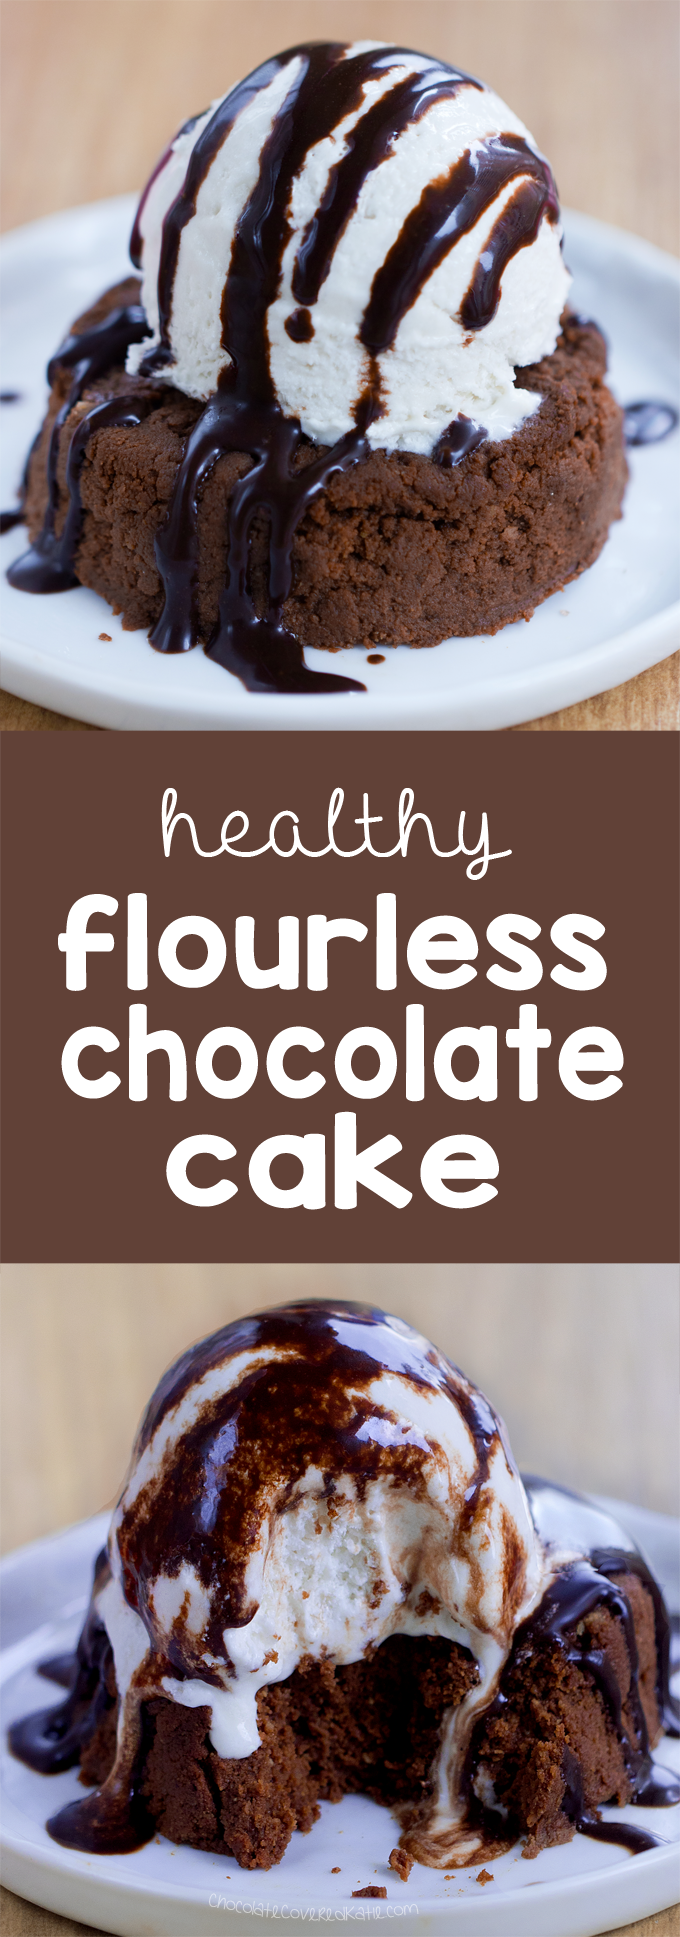 Flourless Chocolate Cake - Ingredients: 1/2 cup cocoa powder, 1/4 tsp baking soda, 2 tsp vanilla extract, 1/2 cup... Full recipe: https://chocolatecoveredkatie.com/ @choccoveredkt